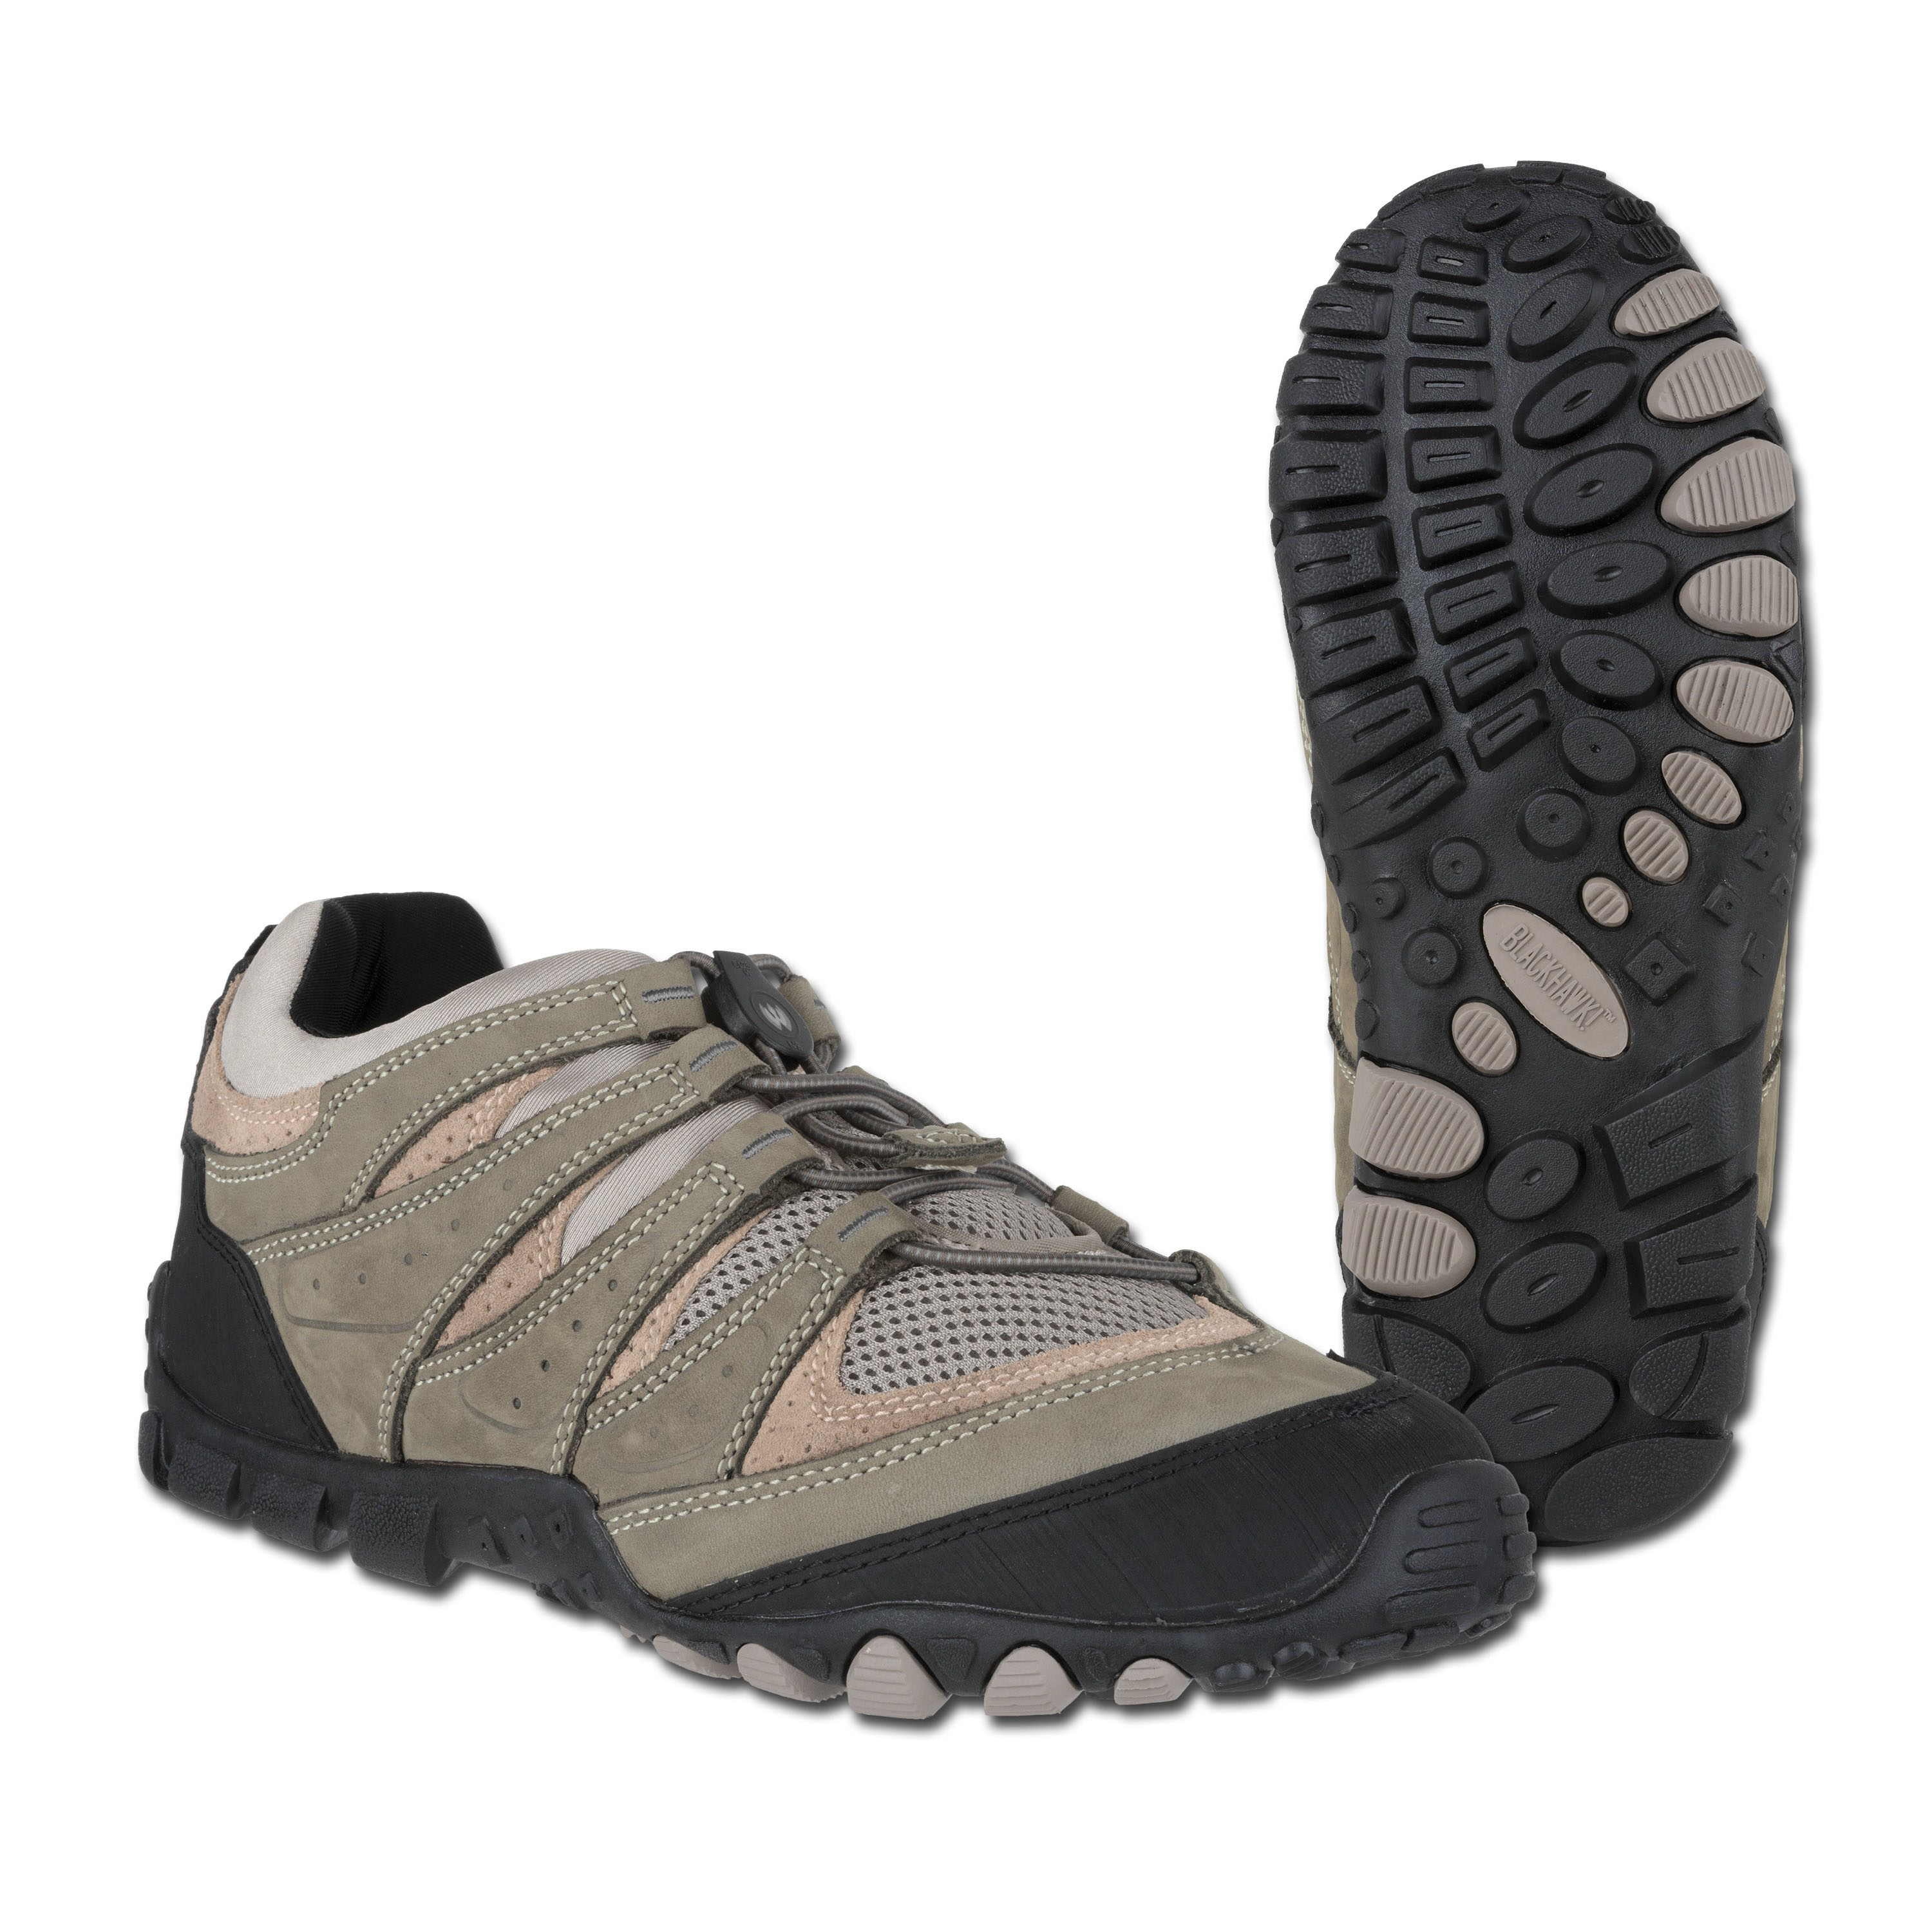 Blackhawk Shoes Tanto Light Hiker gray